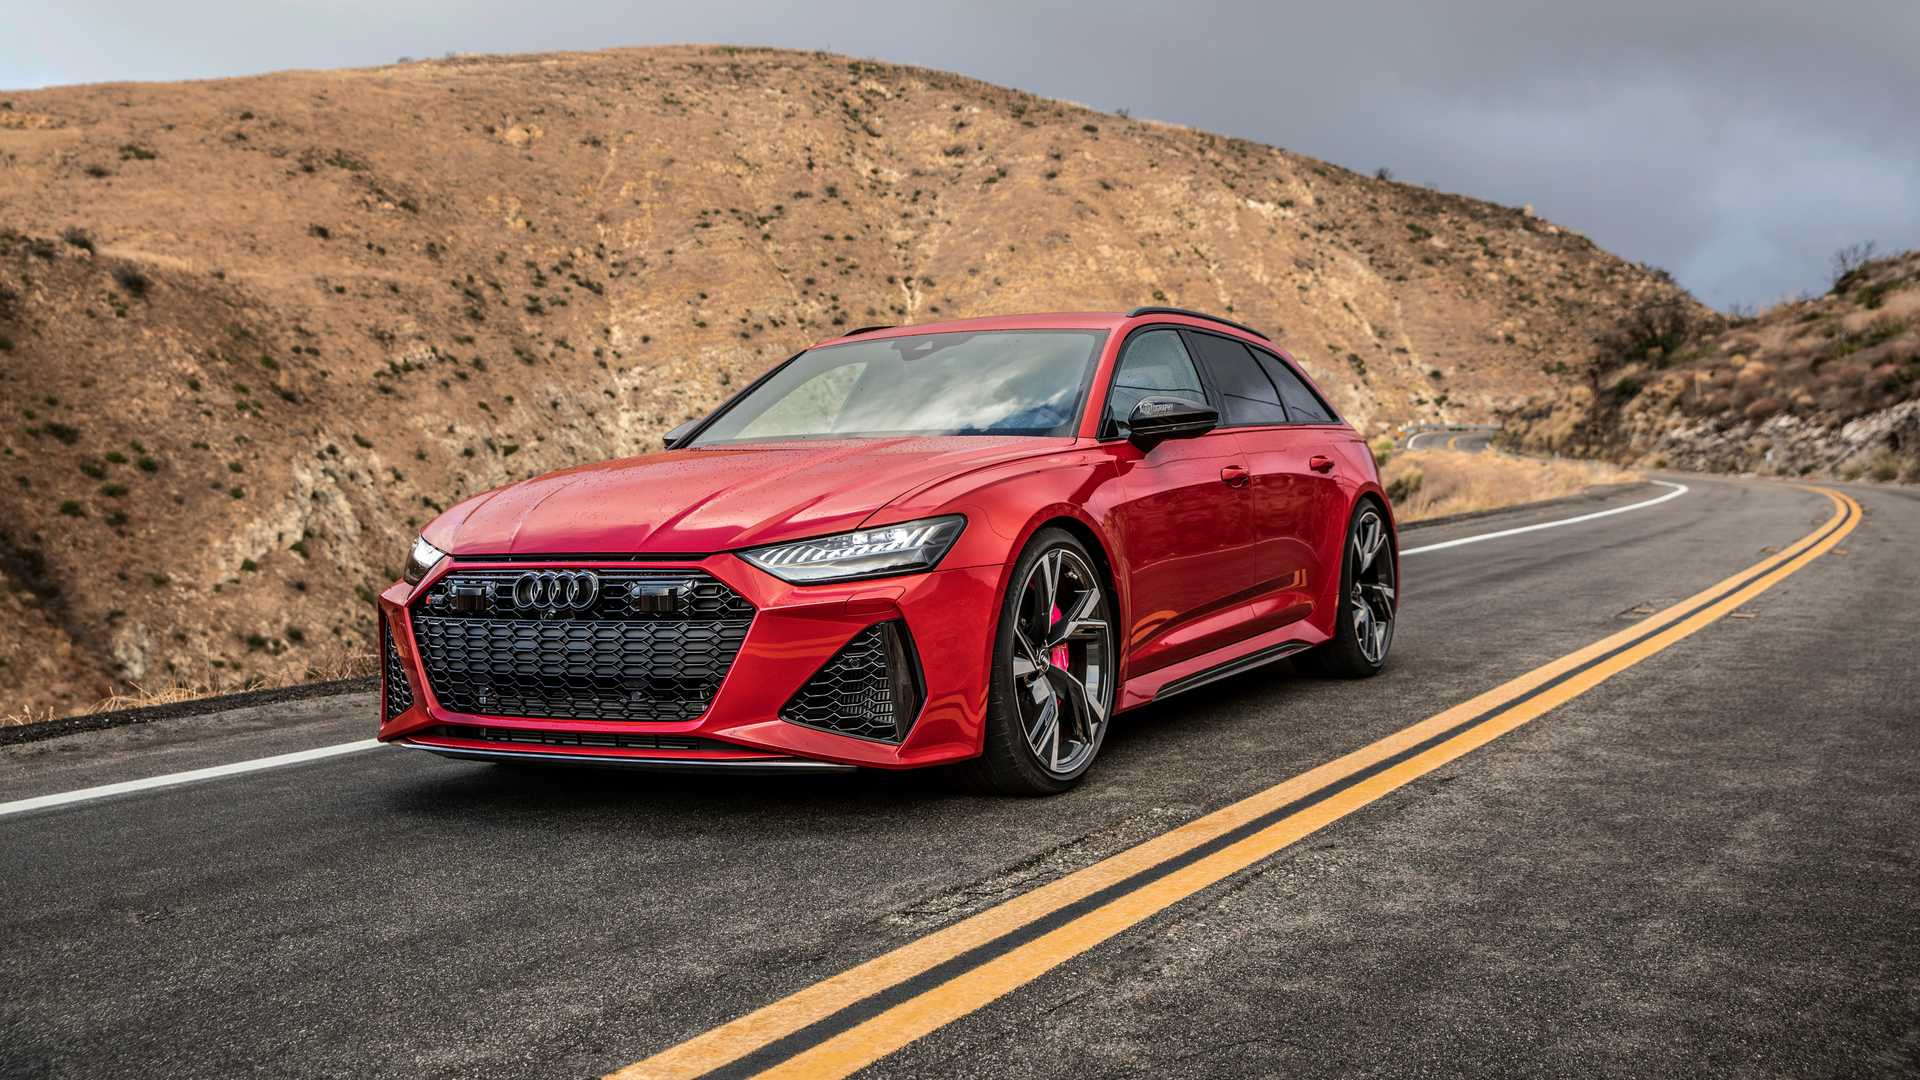 Watch The 2021 Audi RS6 Avant Accelerate Like A Supercar ...